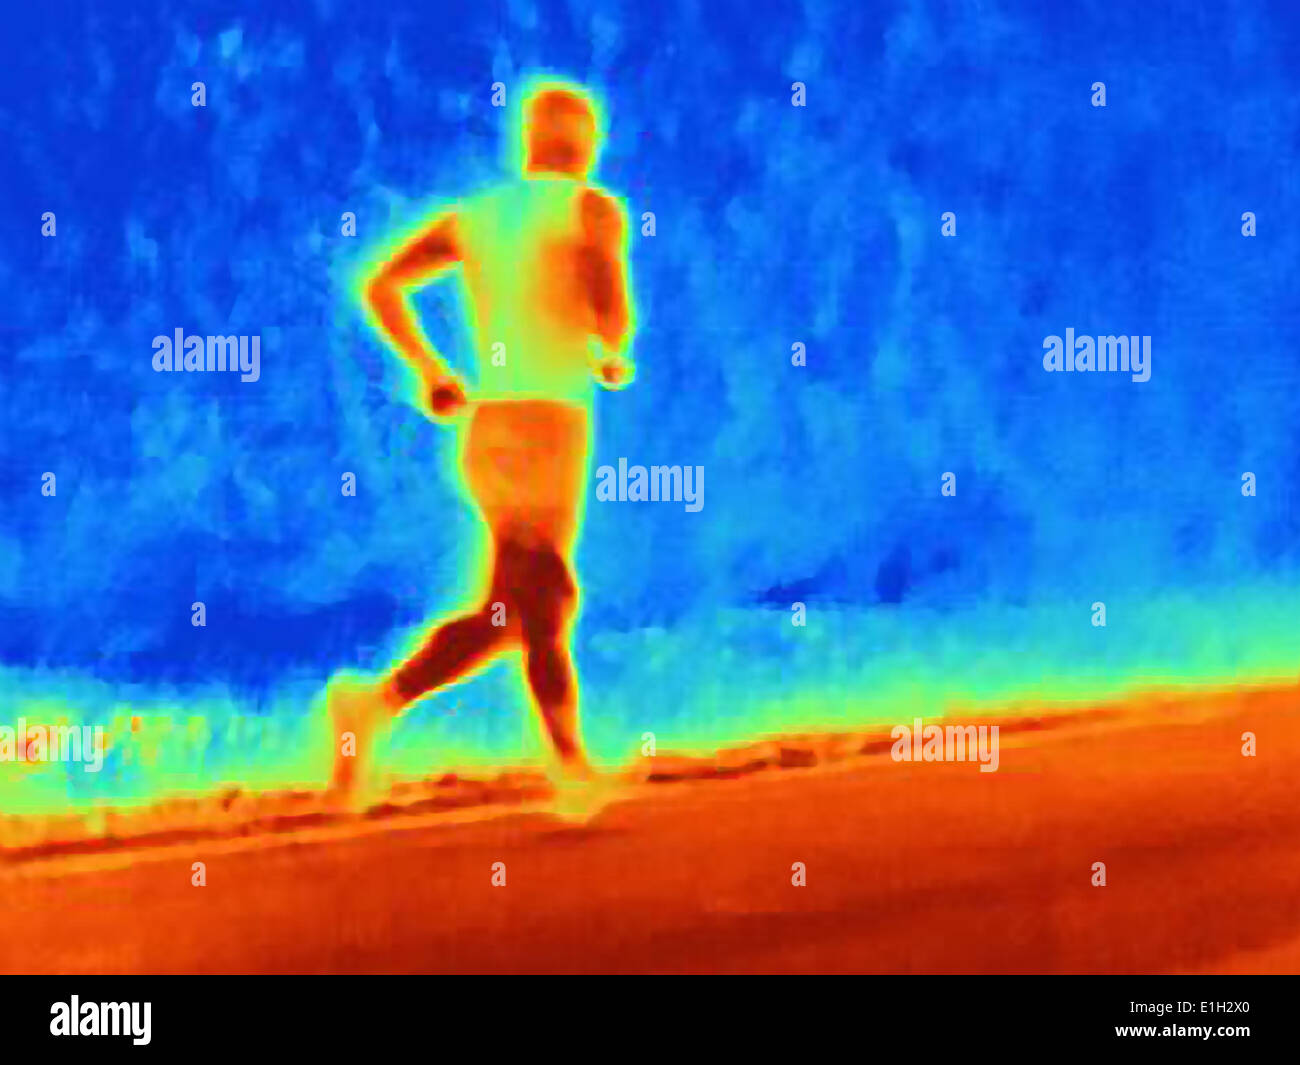 Rear view thermal photograph of young male athlete running. The image shows the heat of the muscles - Stock Image